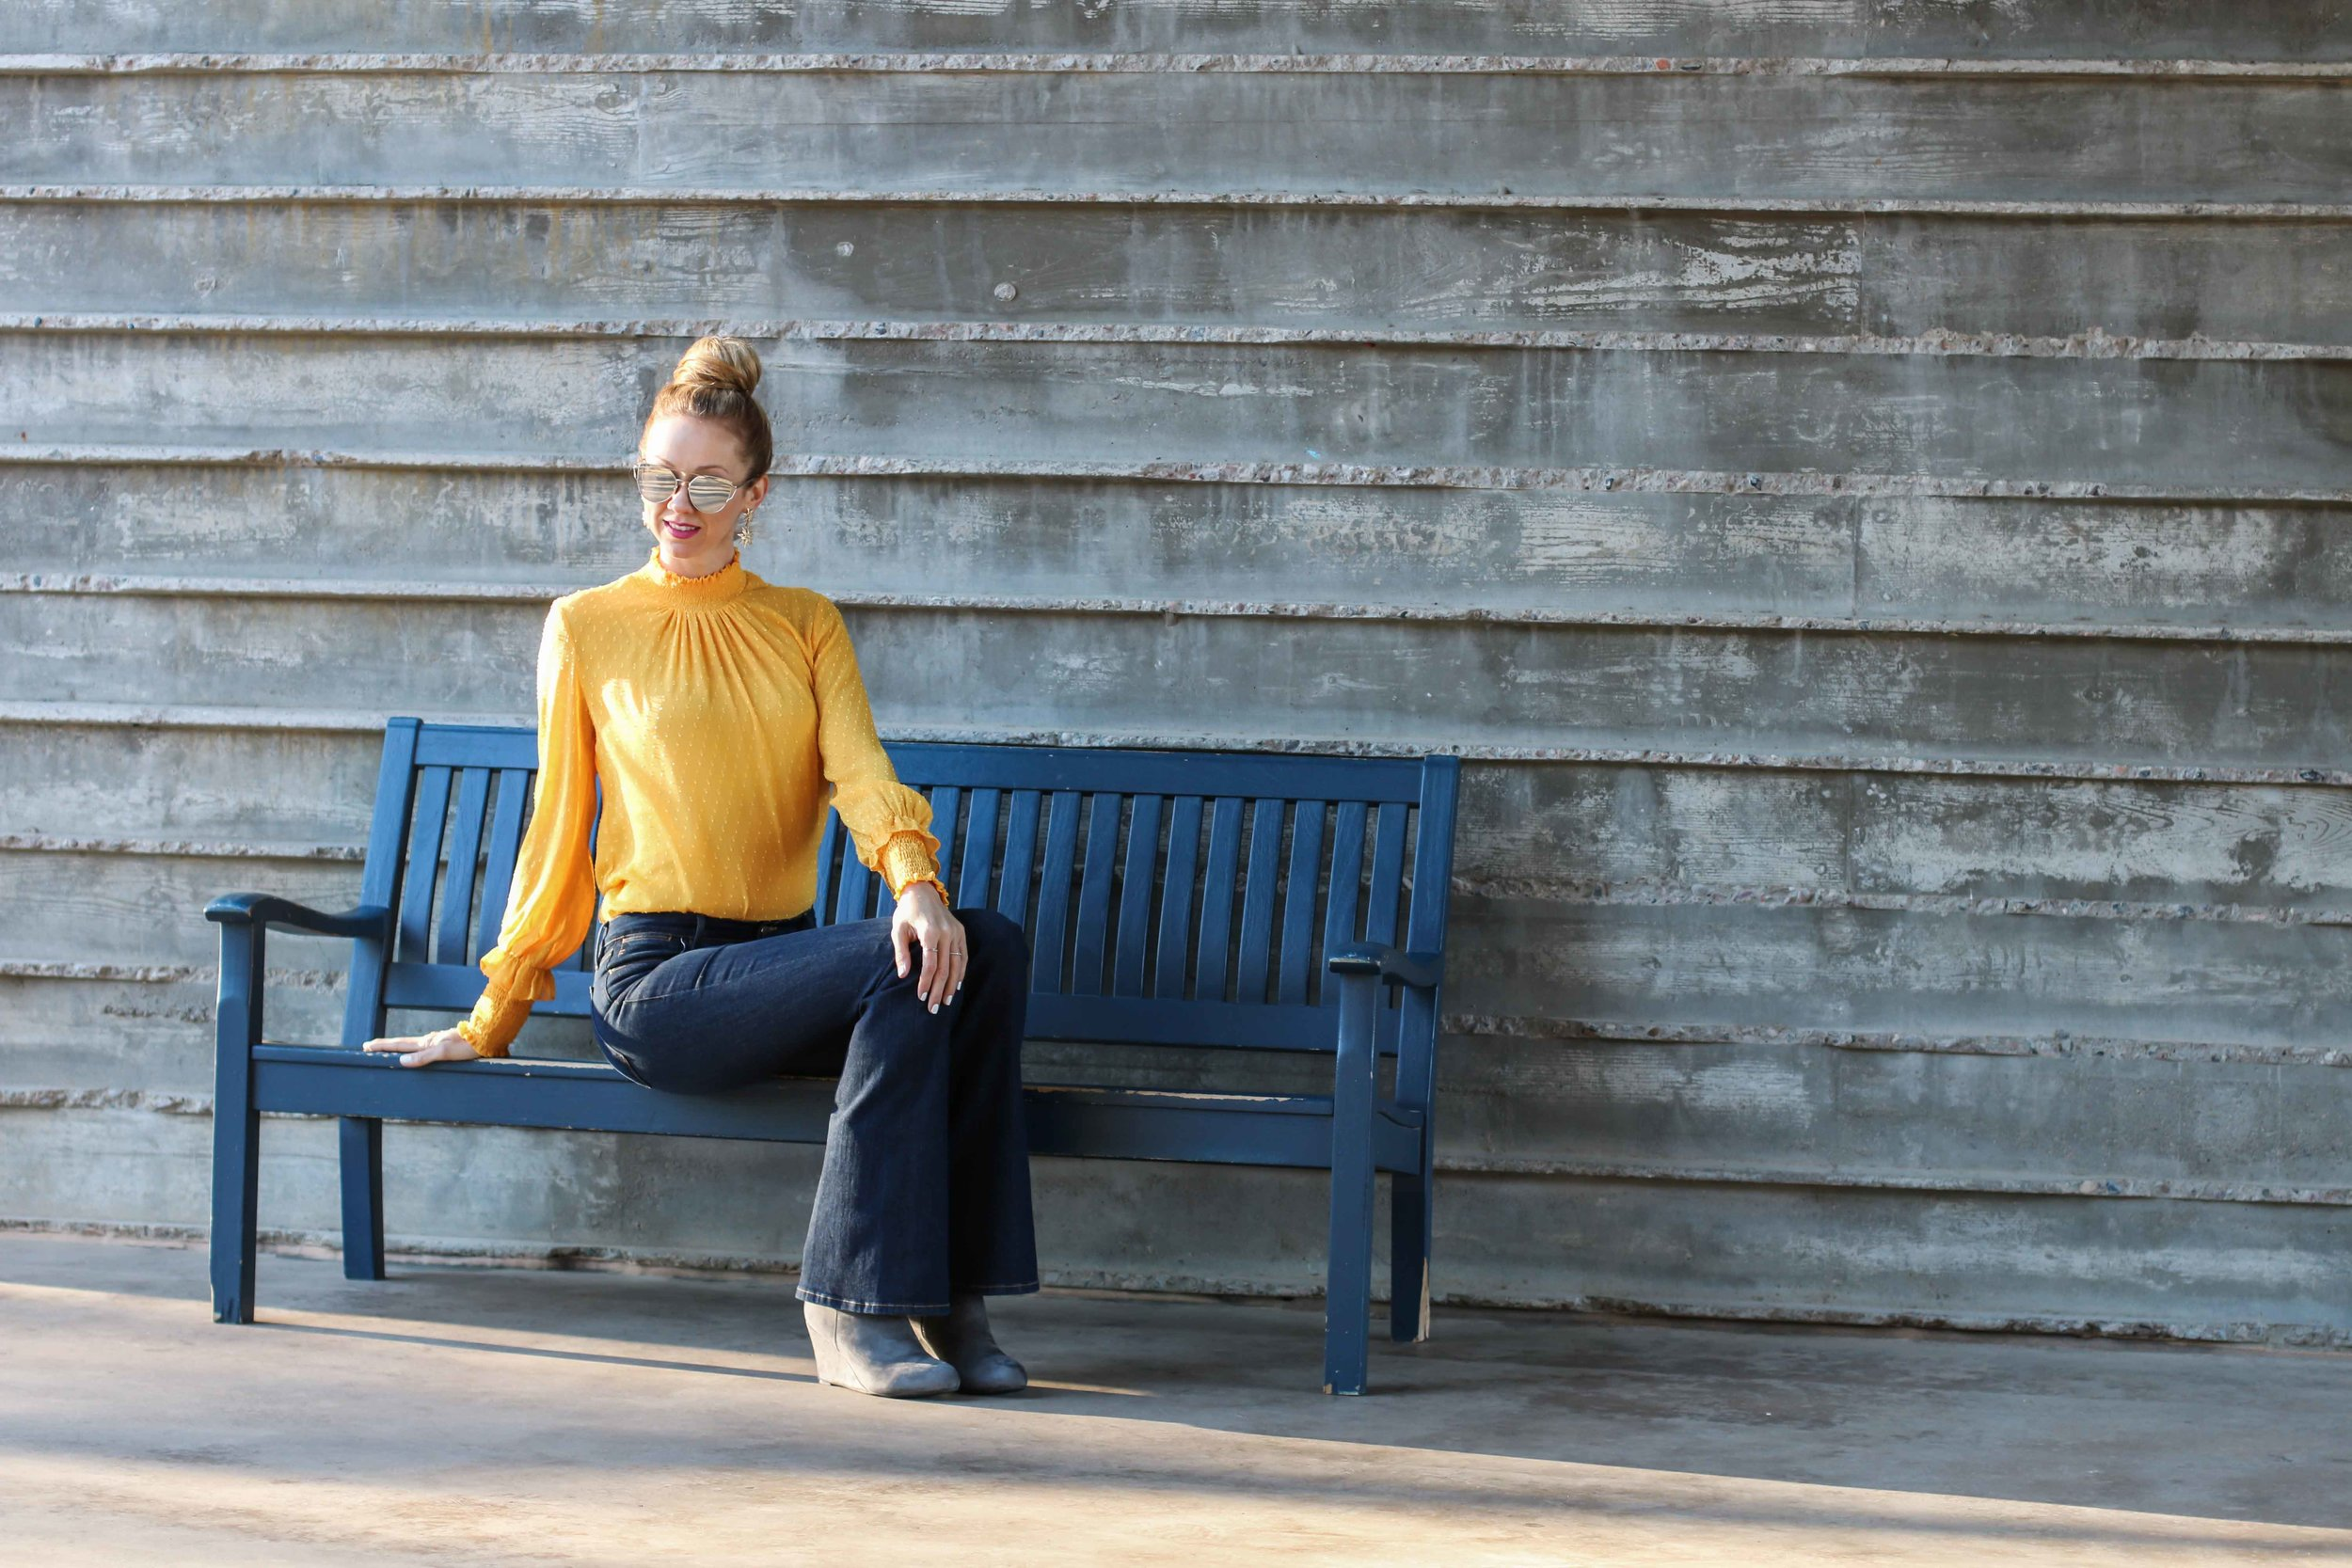 english-factory-shopbop-marigold-long-sleeve-top.jpg